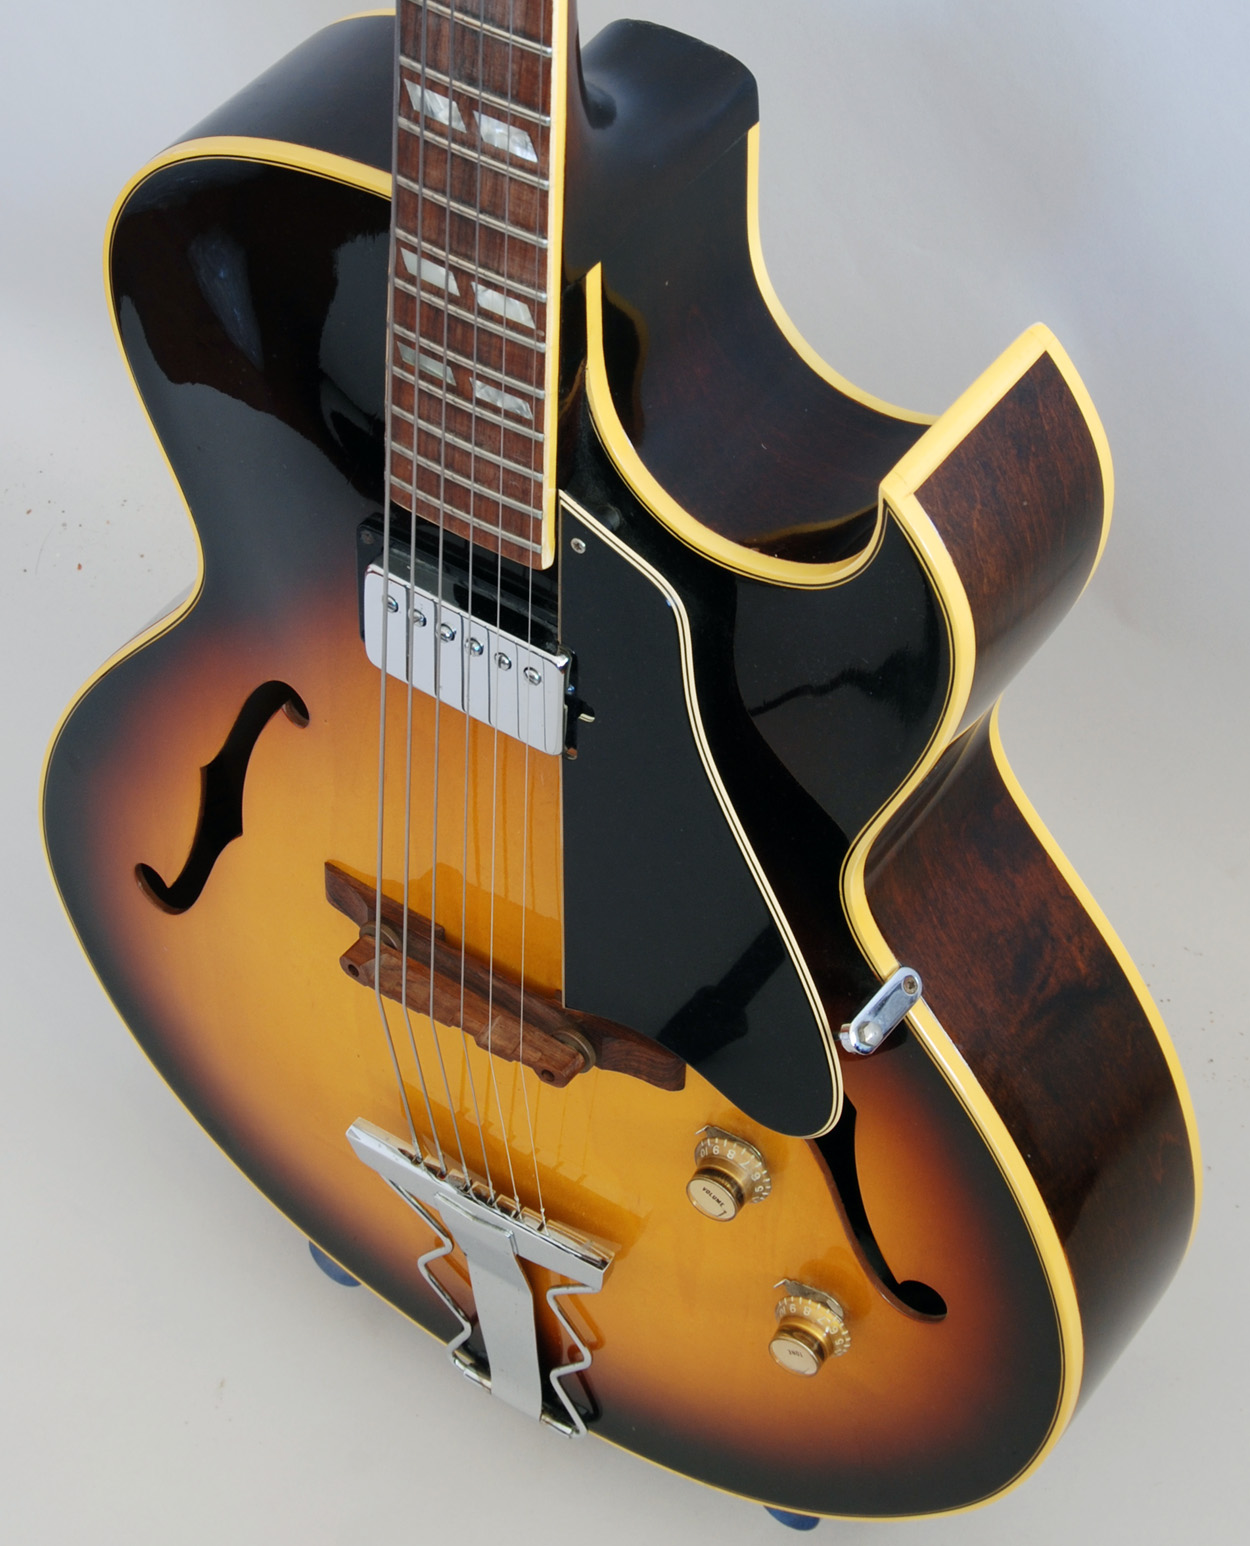 Side By Side For Sale >> Gibson ES175 Guitar For Sale